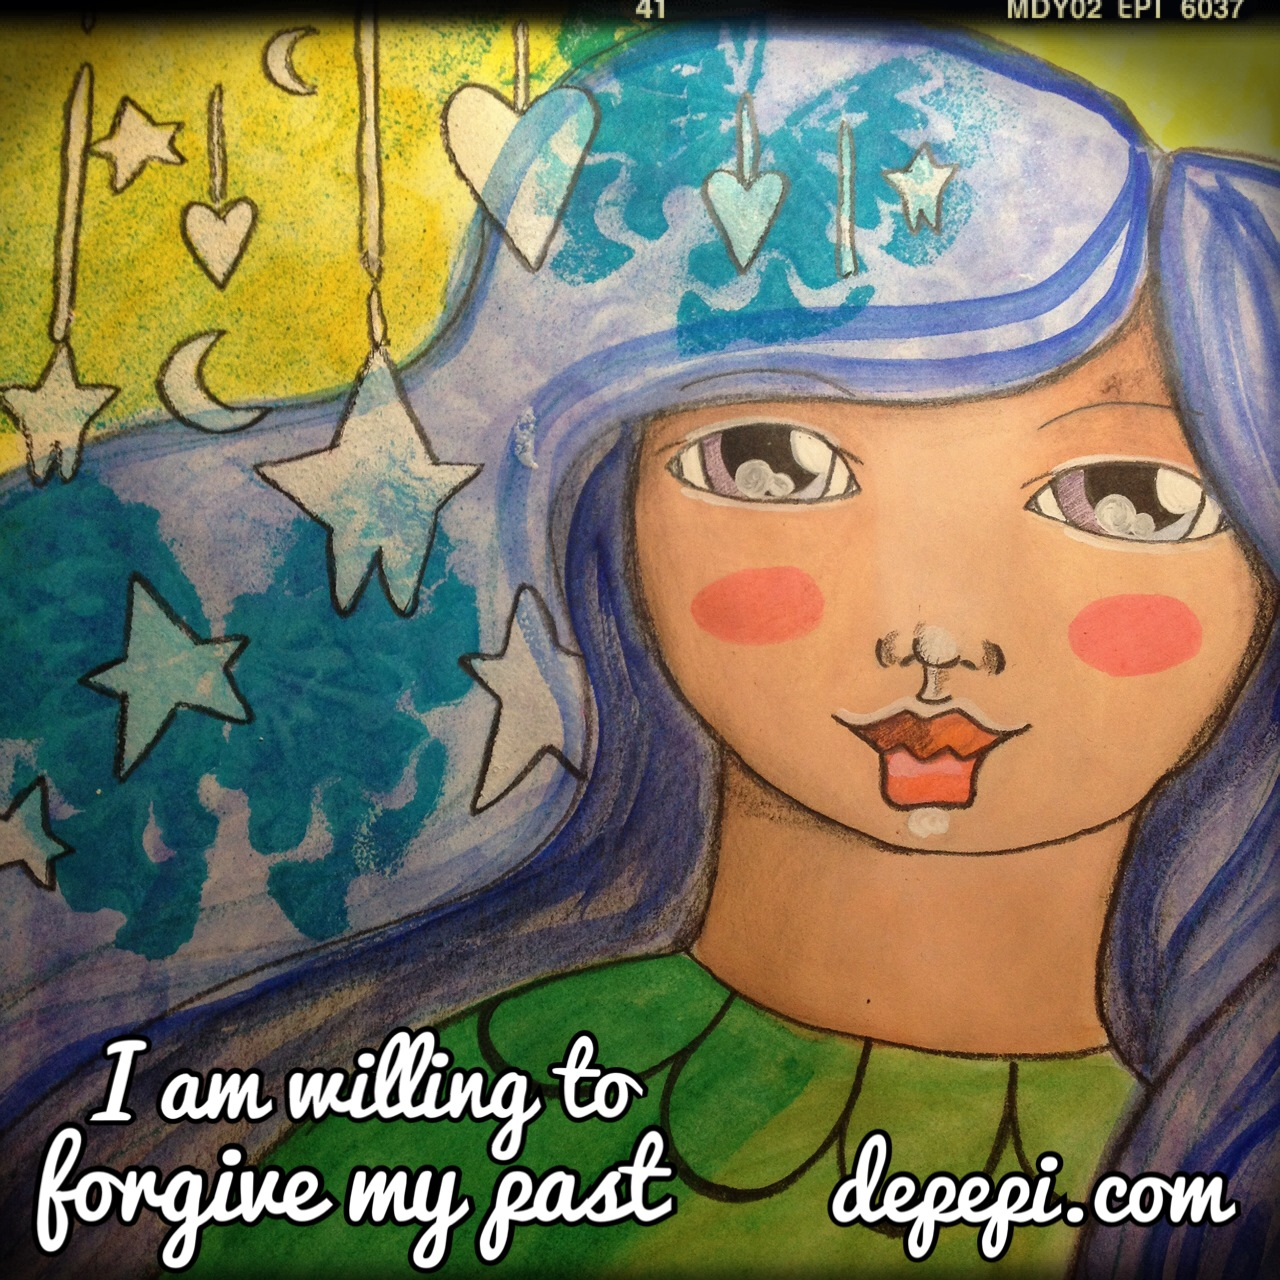 mixed media, mixed media art, journaling, affirmations, affirmation, kawaii, cute, depepi, depepi.com